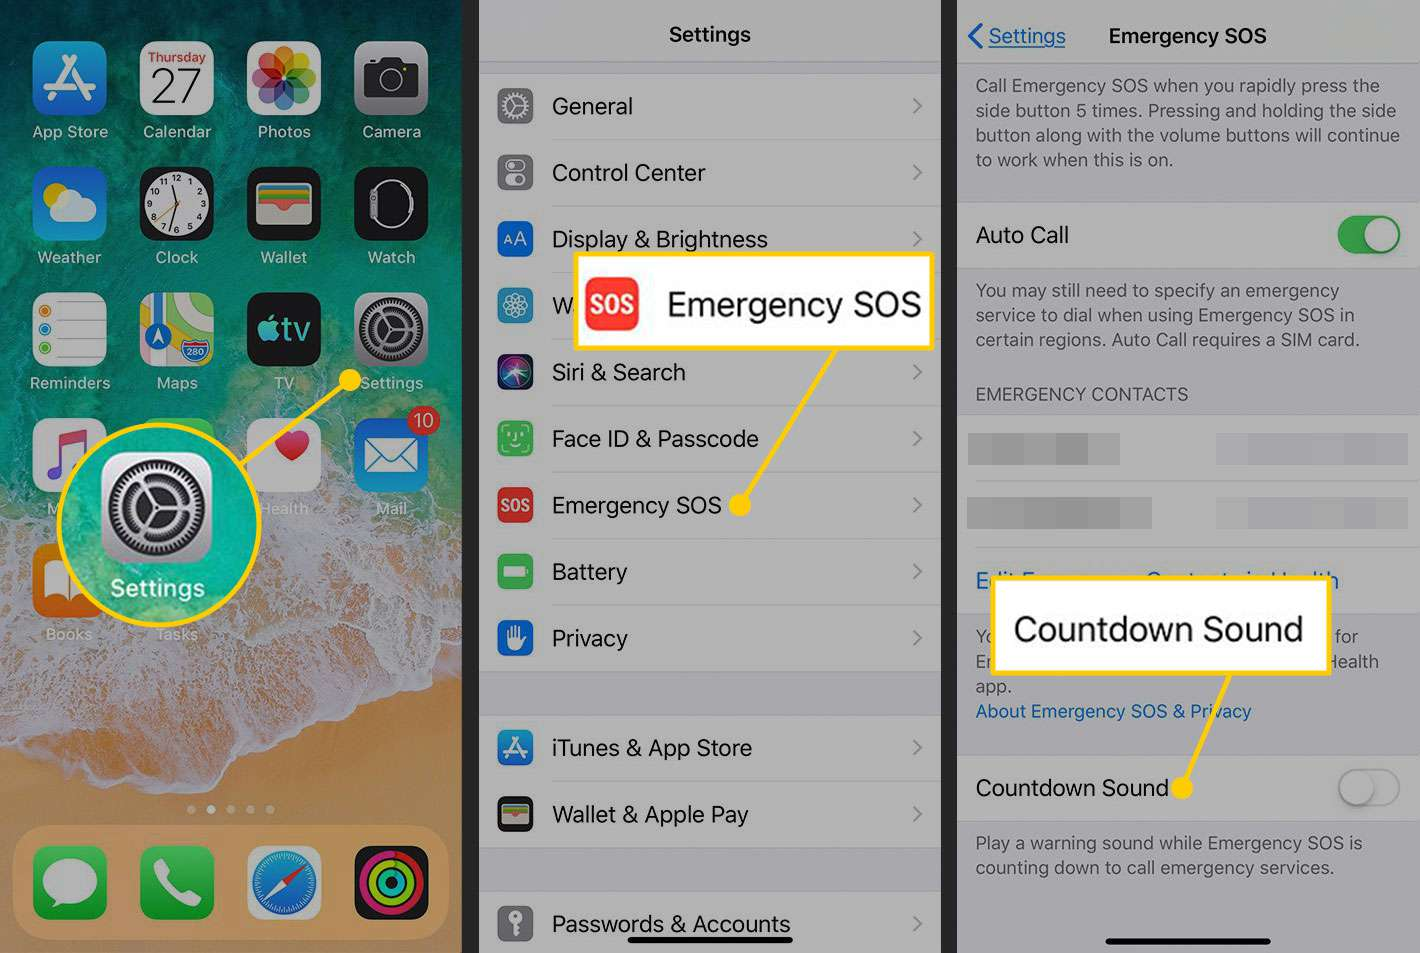 Turning off the countdown sound for SOS calls on an iPhone